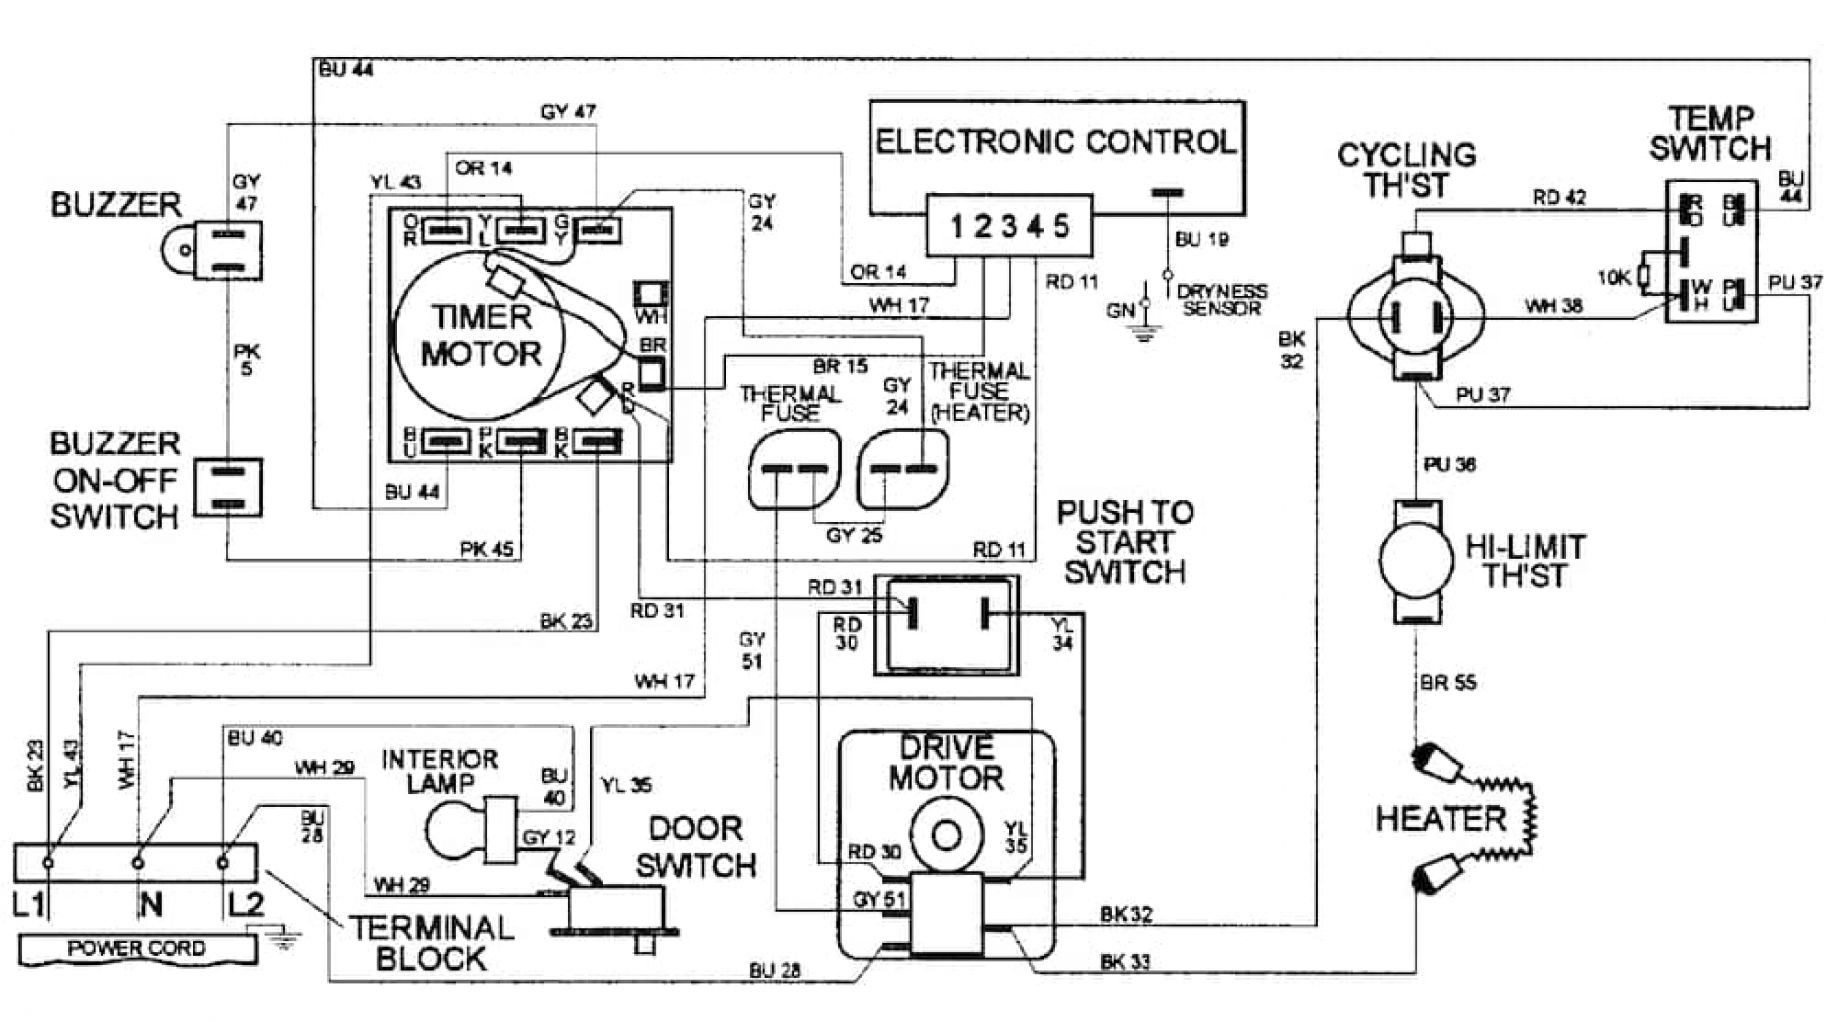 Swell Wiring For Neptune Electric Dryers Blow Drying Wiring Diagram Data Wiring Cloud Tobiqorsaluggs Outletorg